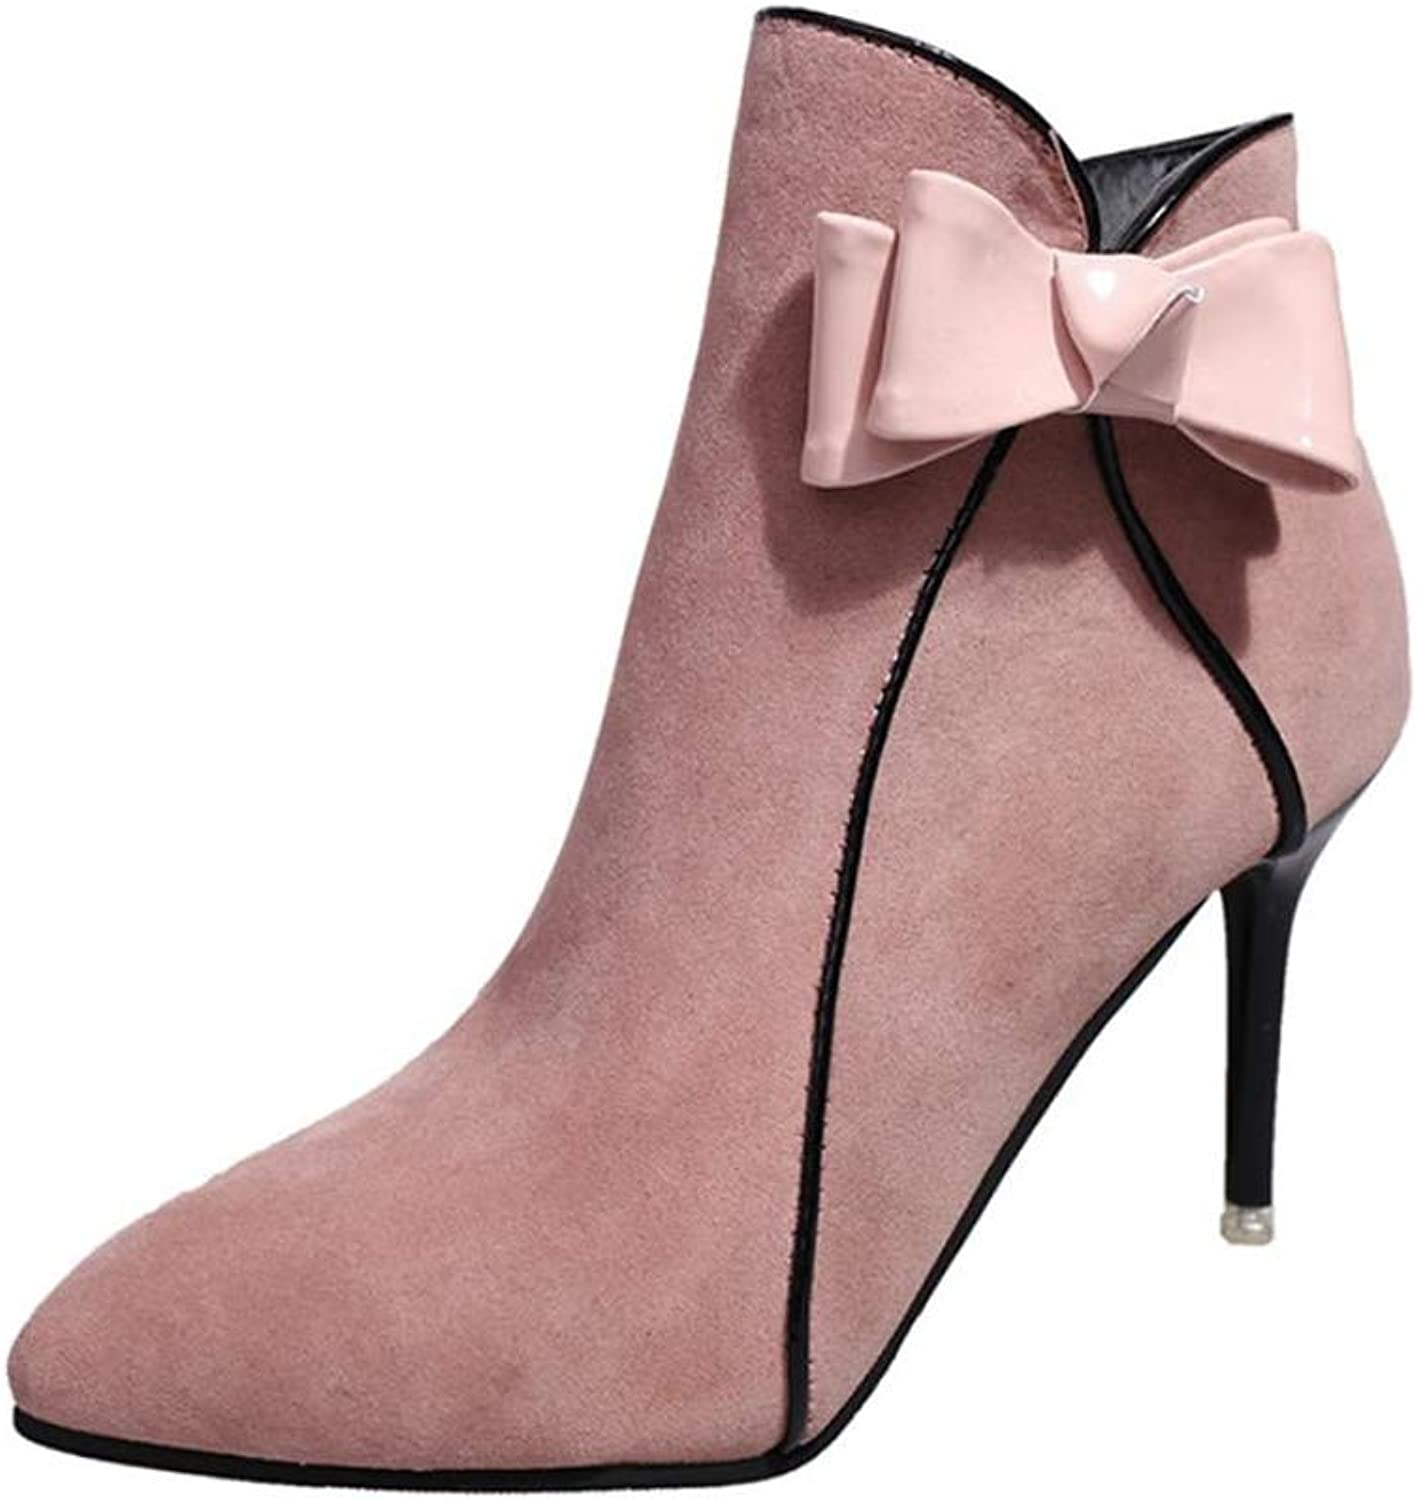 Cdon Pointed Women's Boots Bow Stiletto Booties Side Zipper Boots Ladies shoes